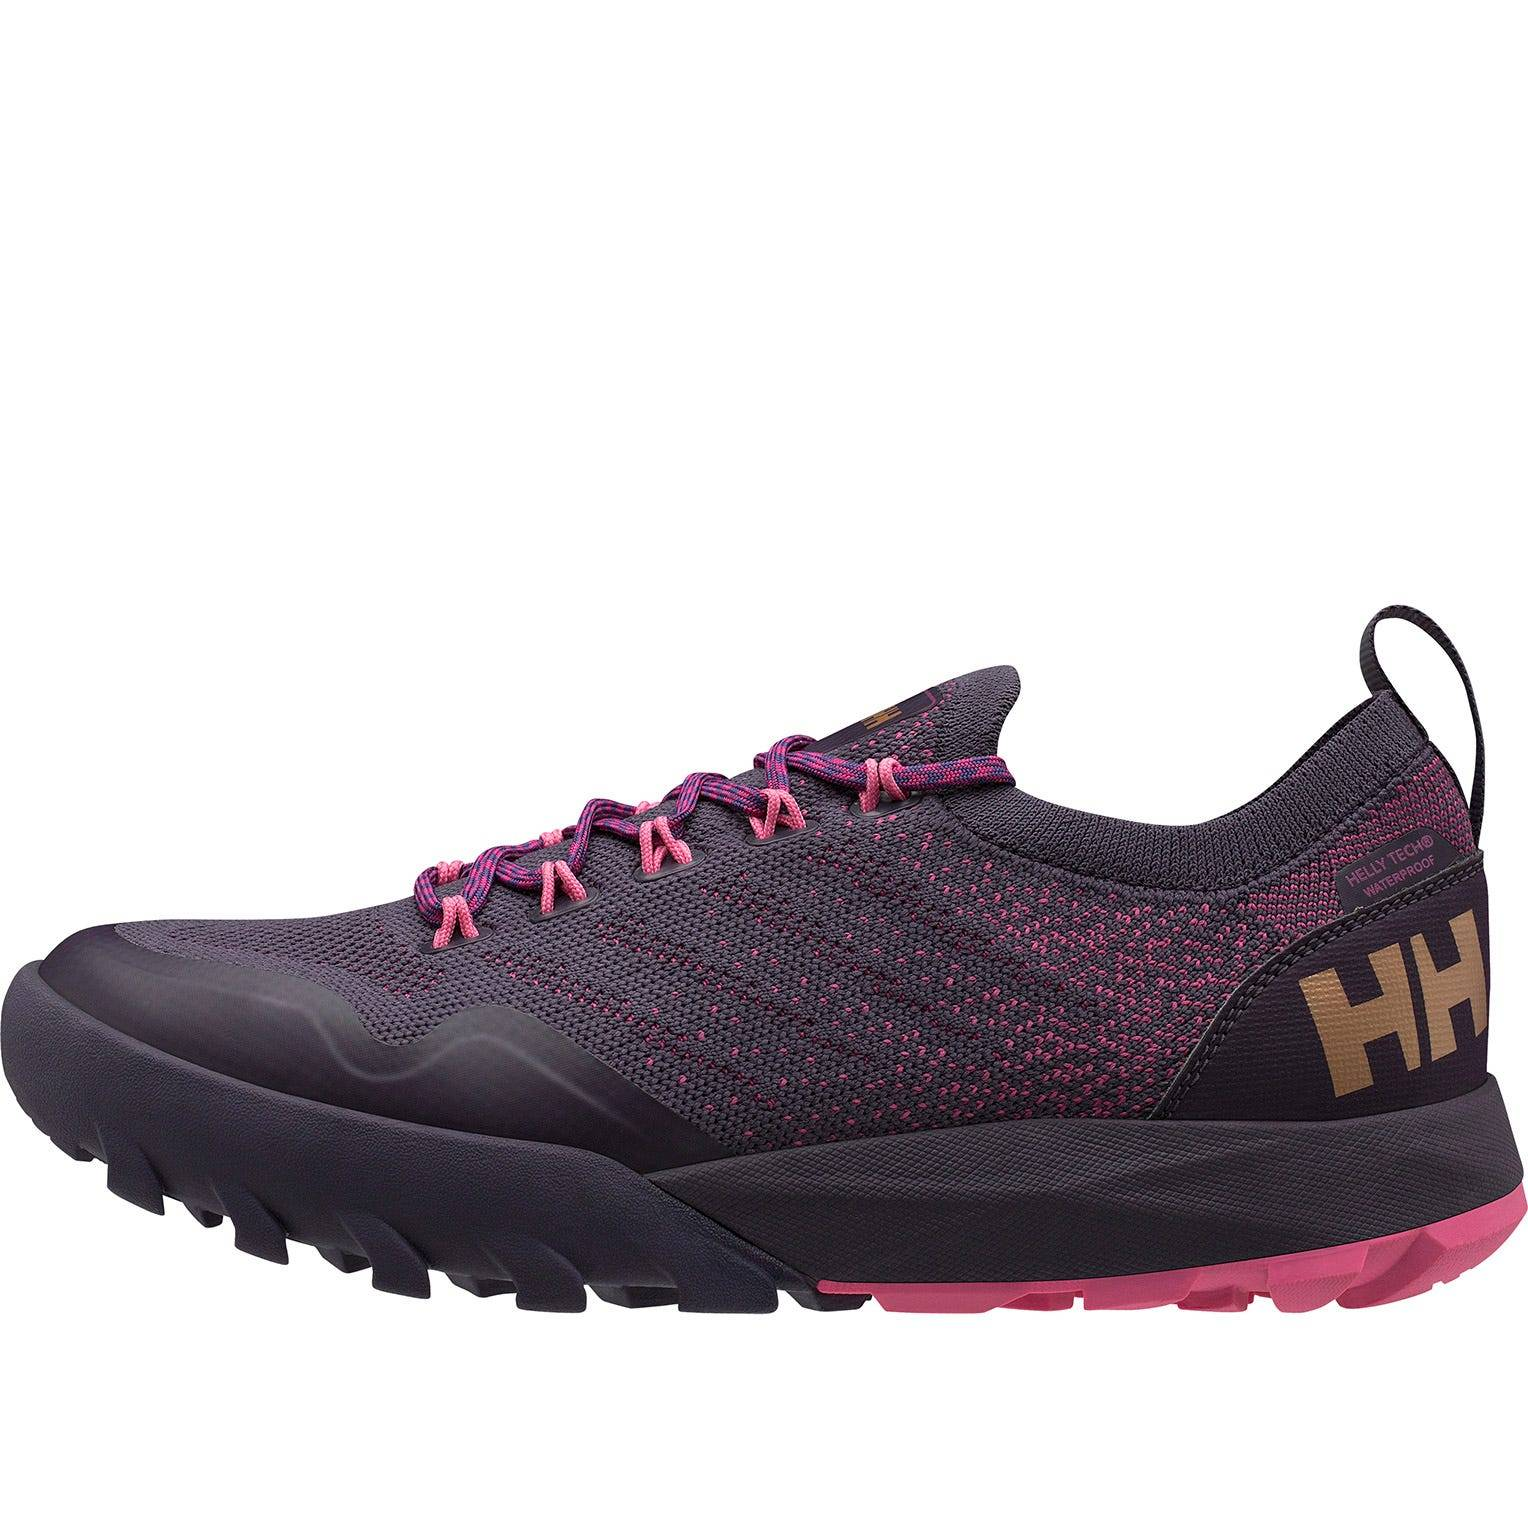 Helly Hansen Womens Loke Dash 2 Ht Hiking Boot Purple 39.3/8